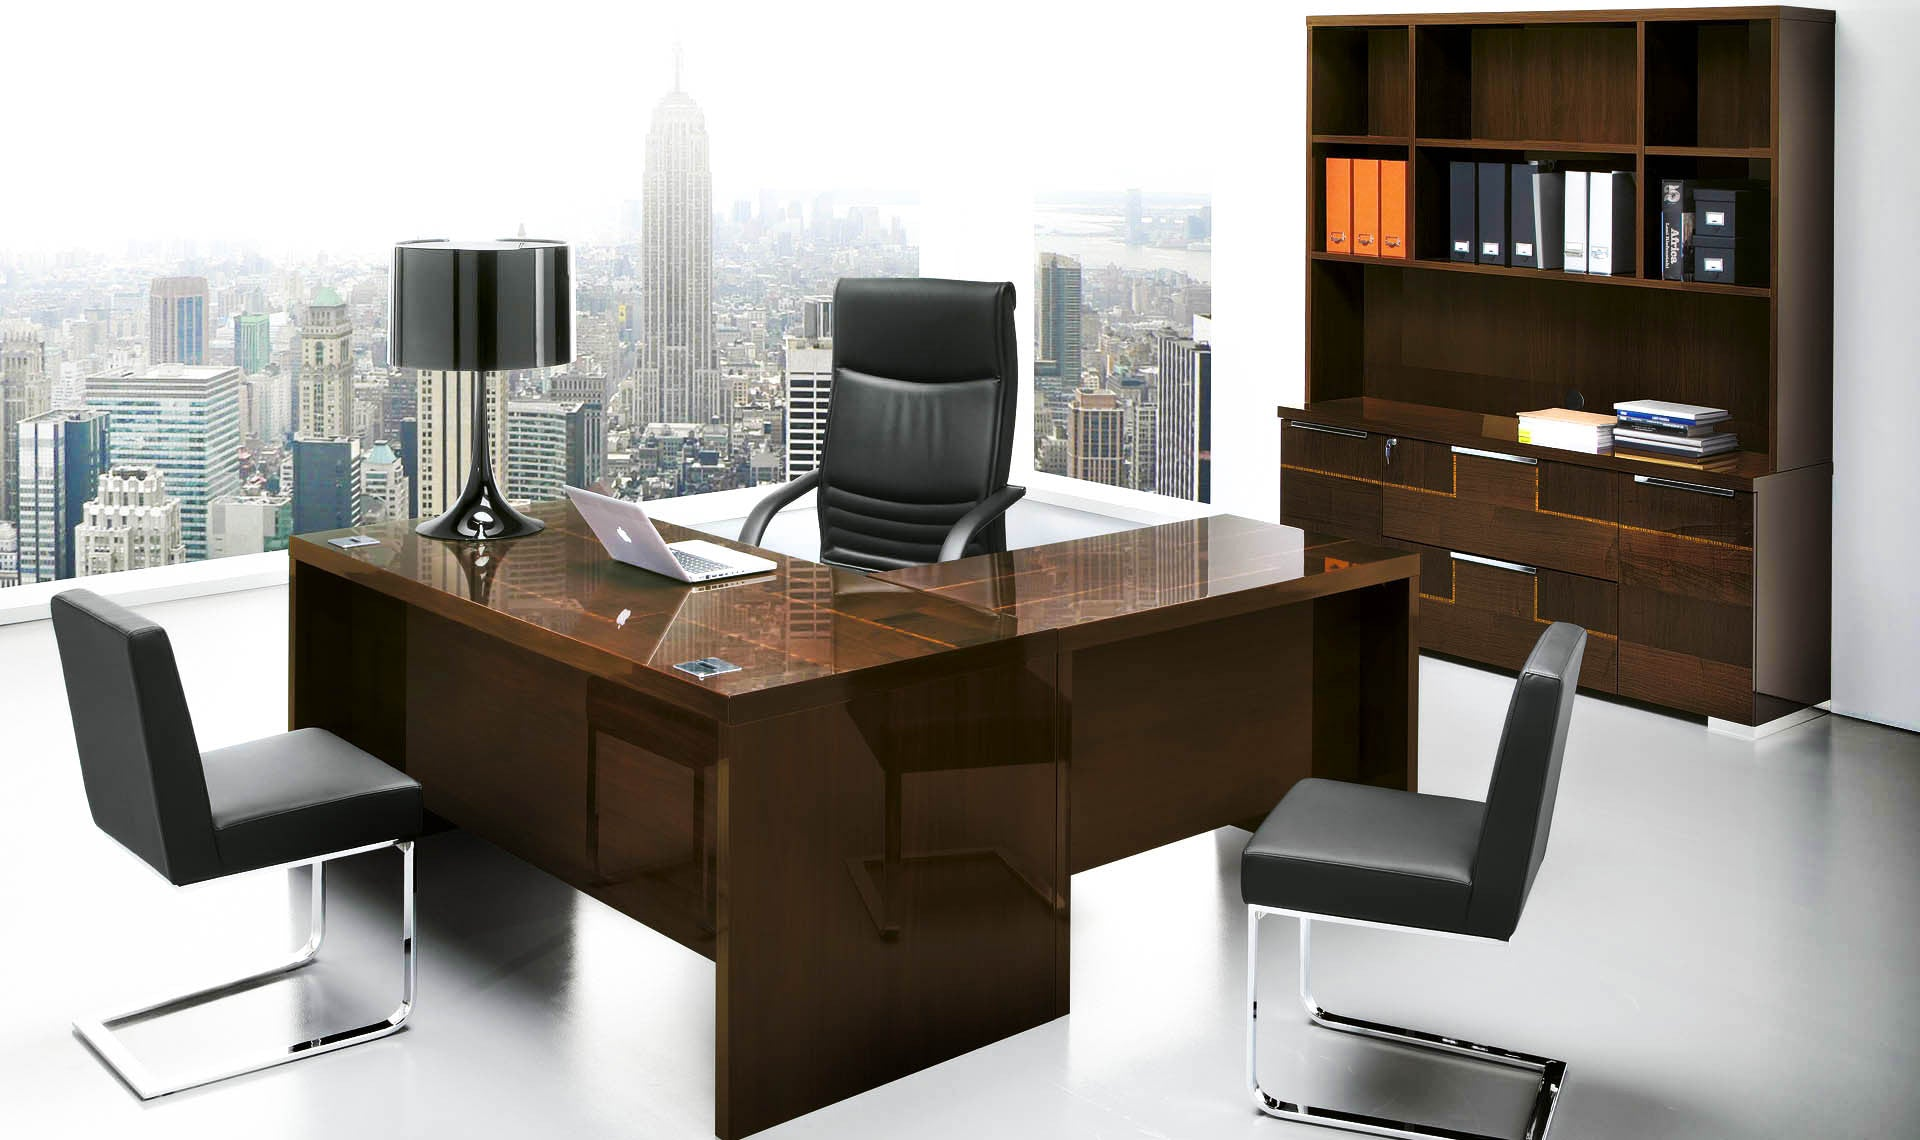 Swell Pisa Office Collection Alf Italia Gallery Furniture Of Home Interior And Landscaping Ologienasavecom